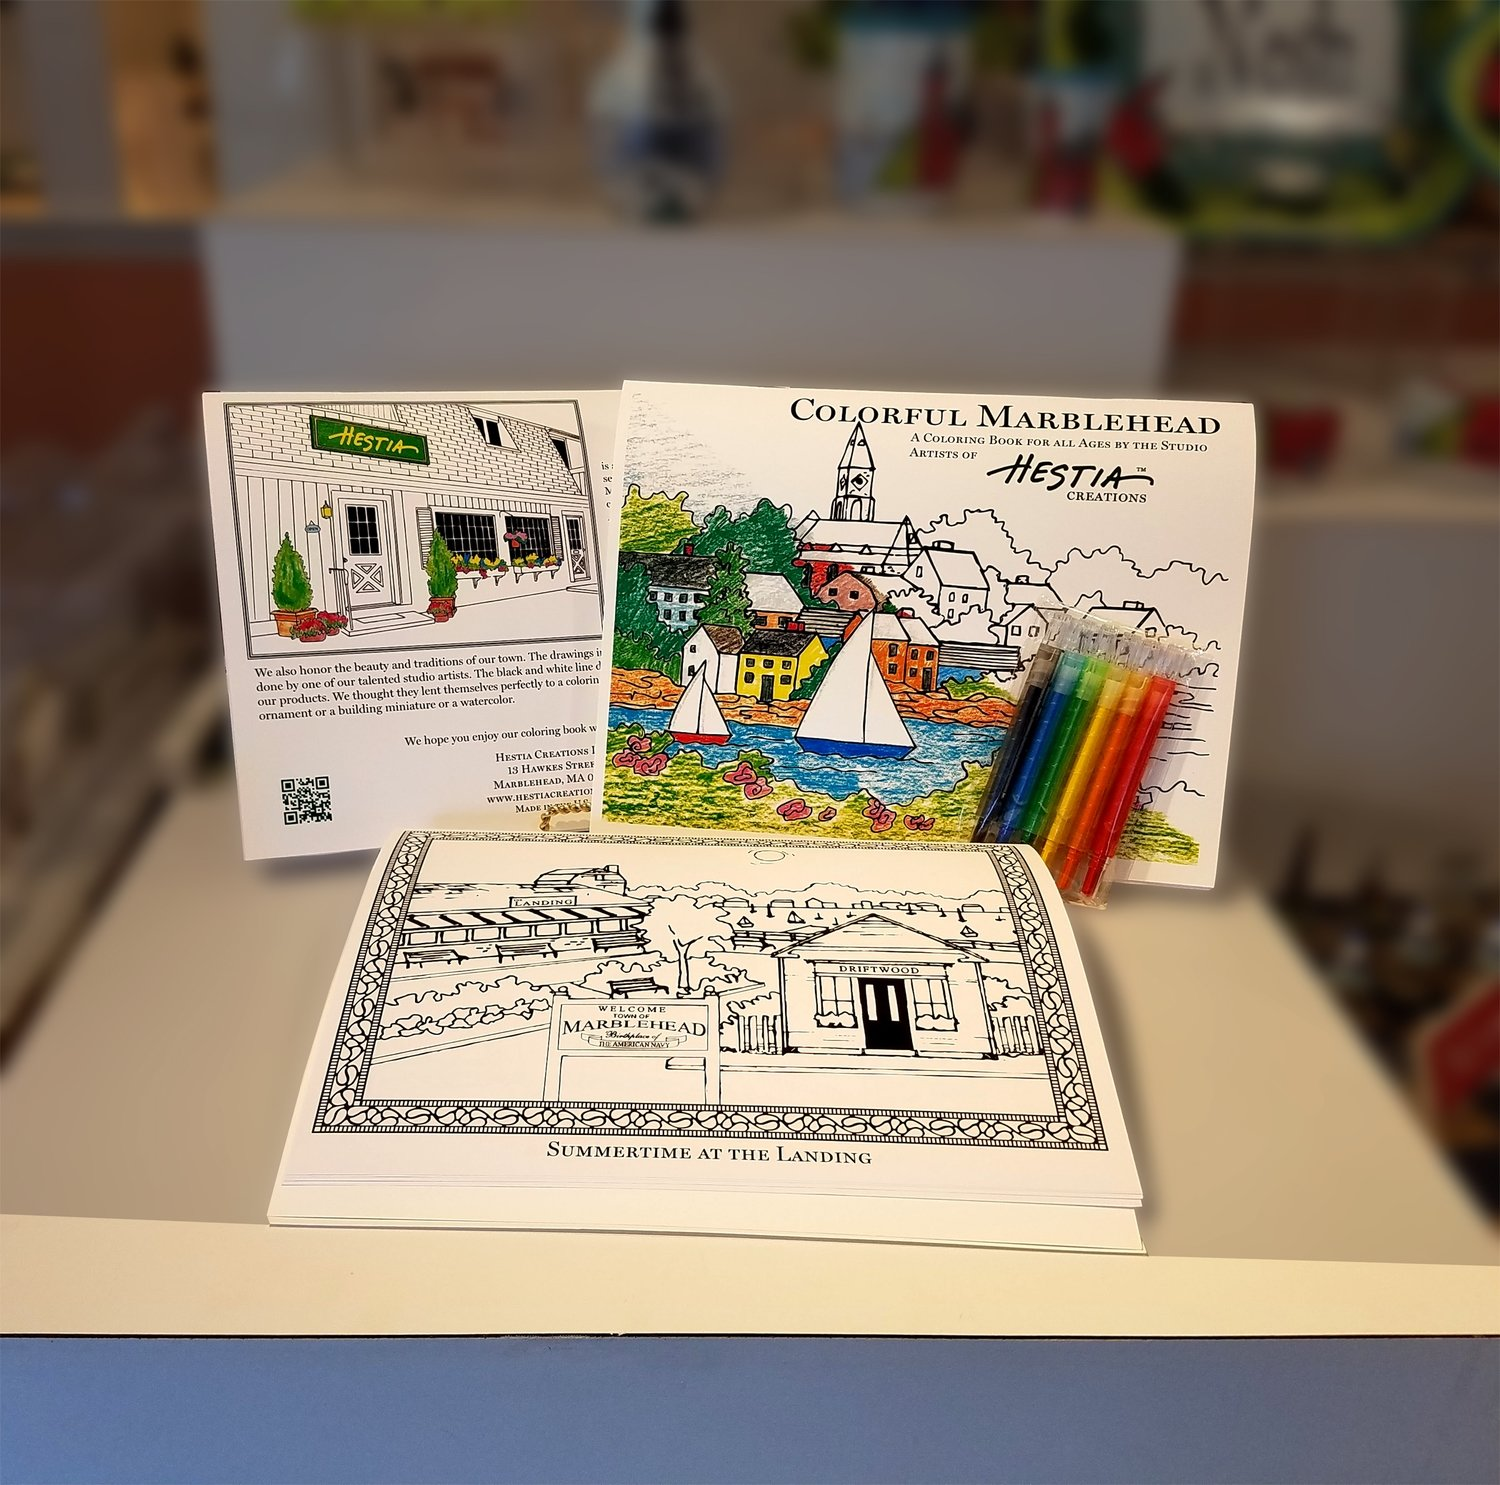 Colorful Marblehead Coloring Book - Designed by our Studio Artists